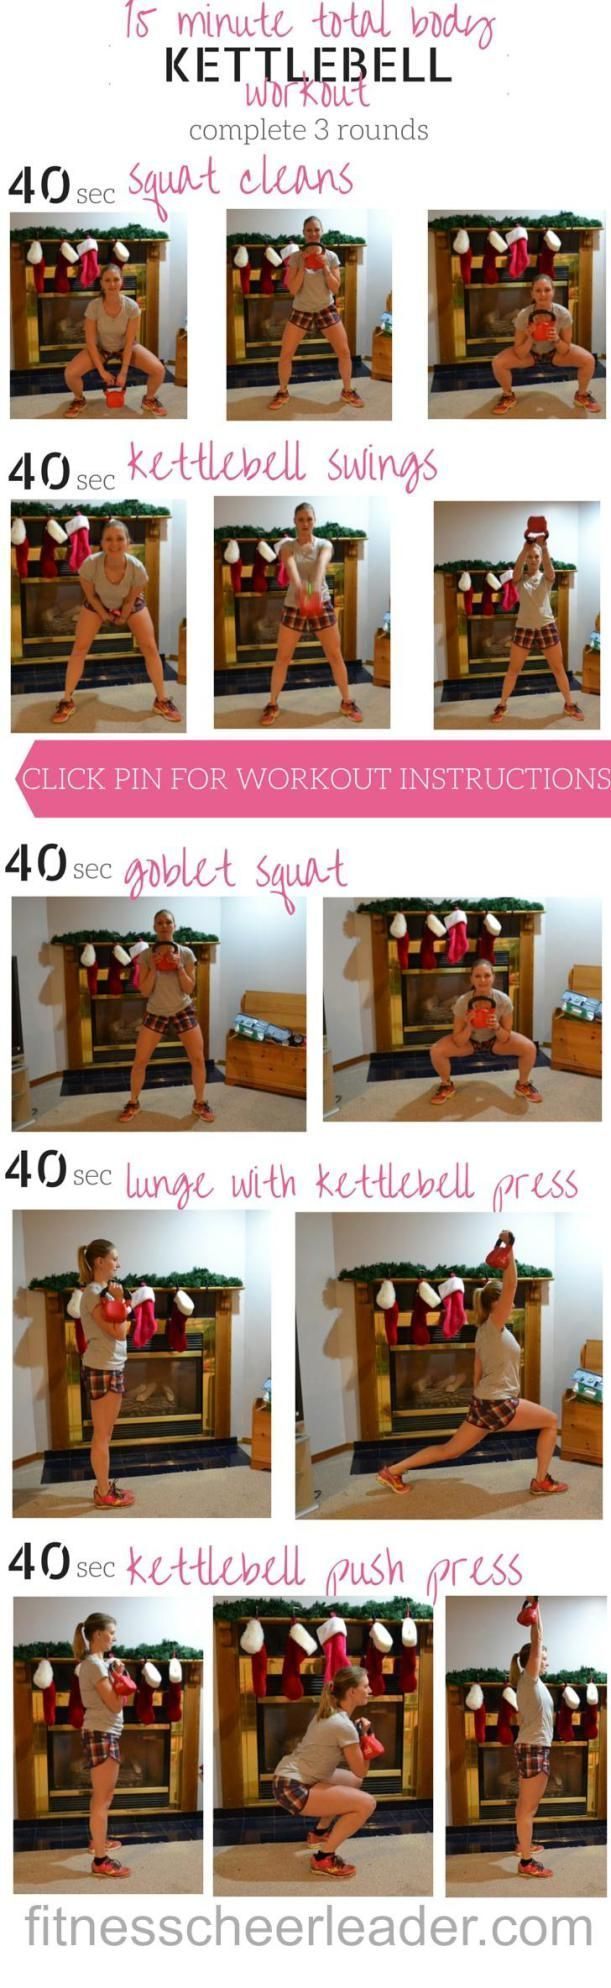 15 min full body kettlebell workout for runners. Do this routine 3 times a week to become a faster runner. #fitness